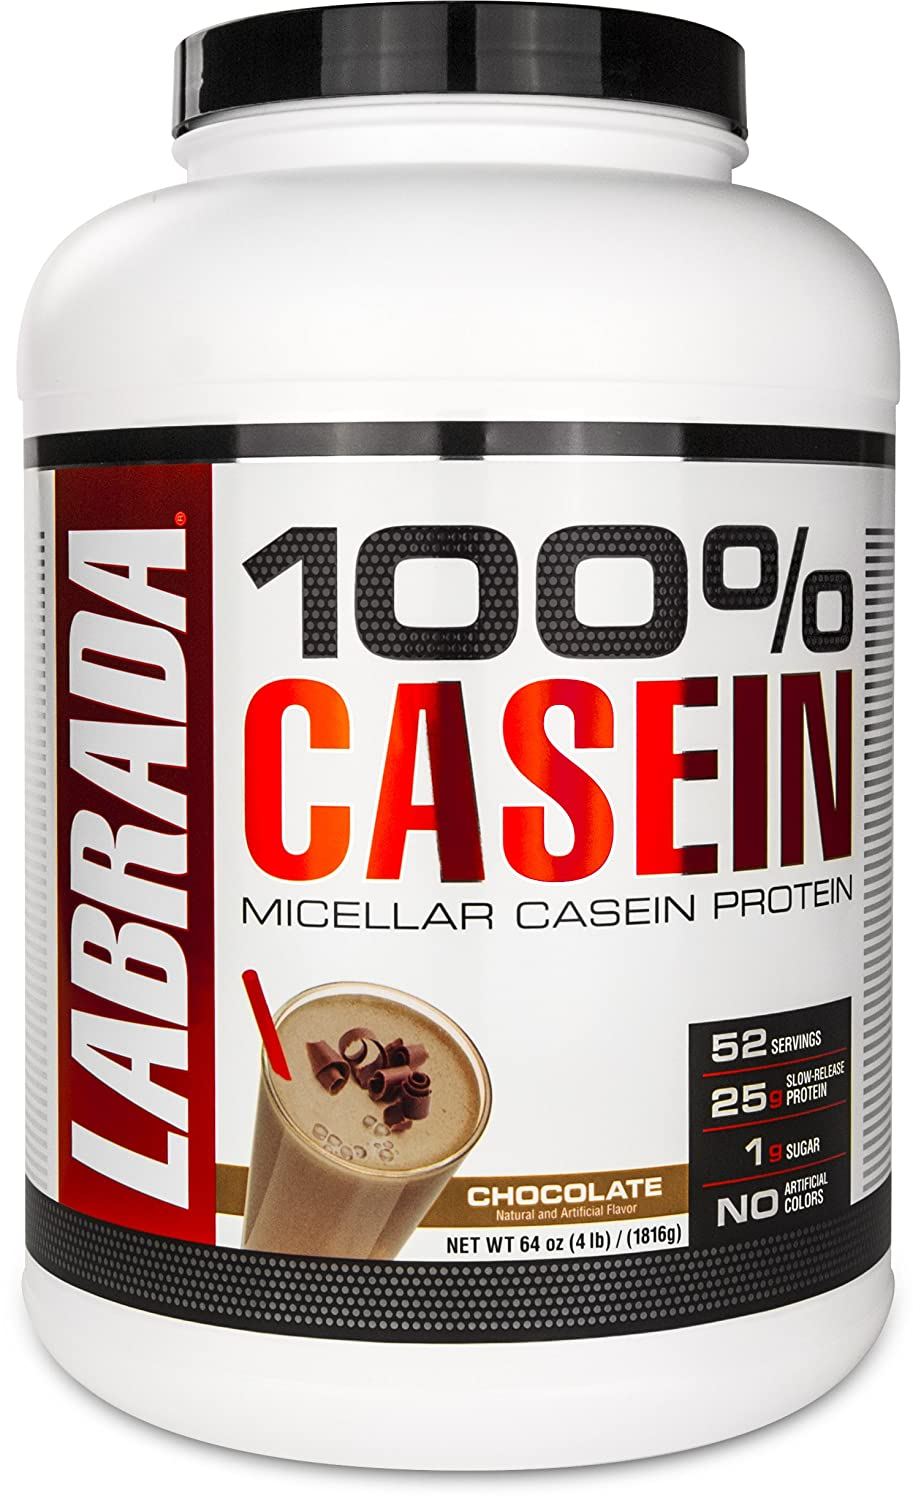 Casein: what it is Why casein protein is not recommended 82